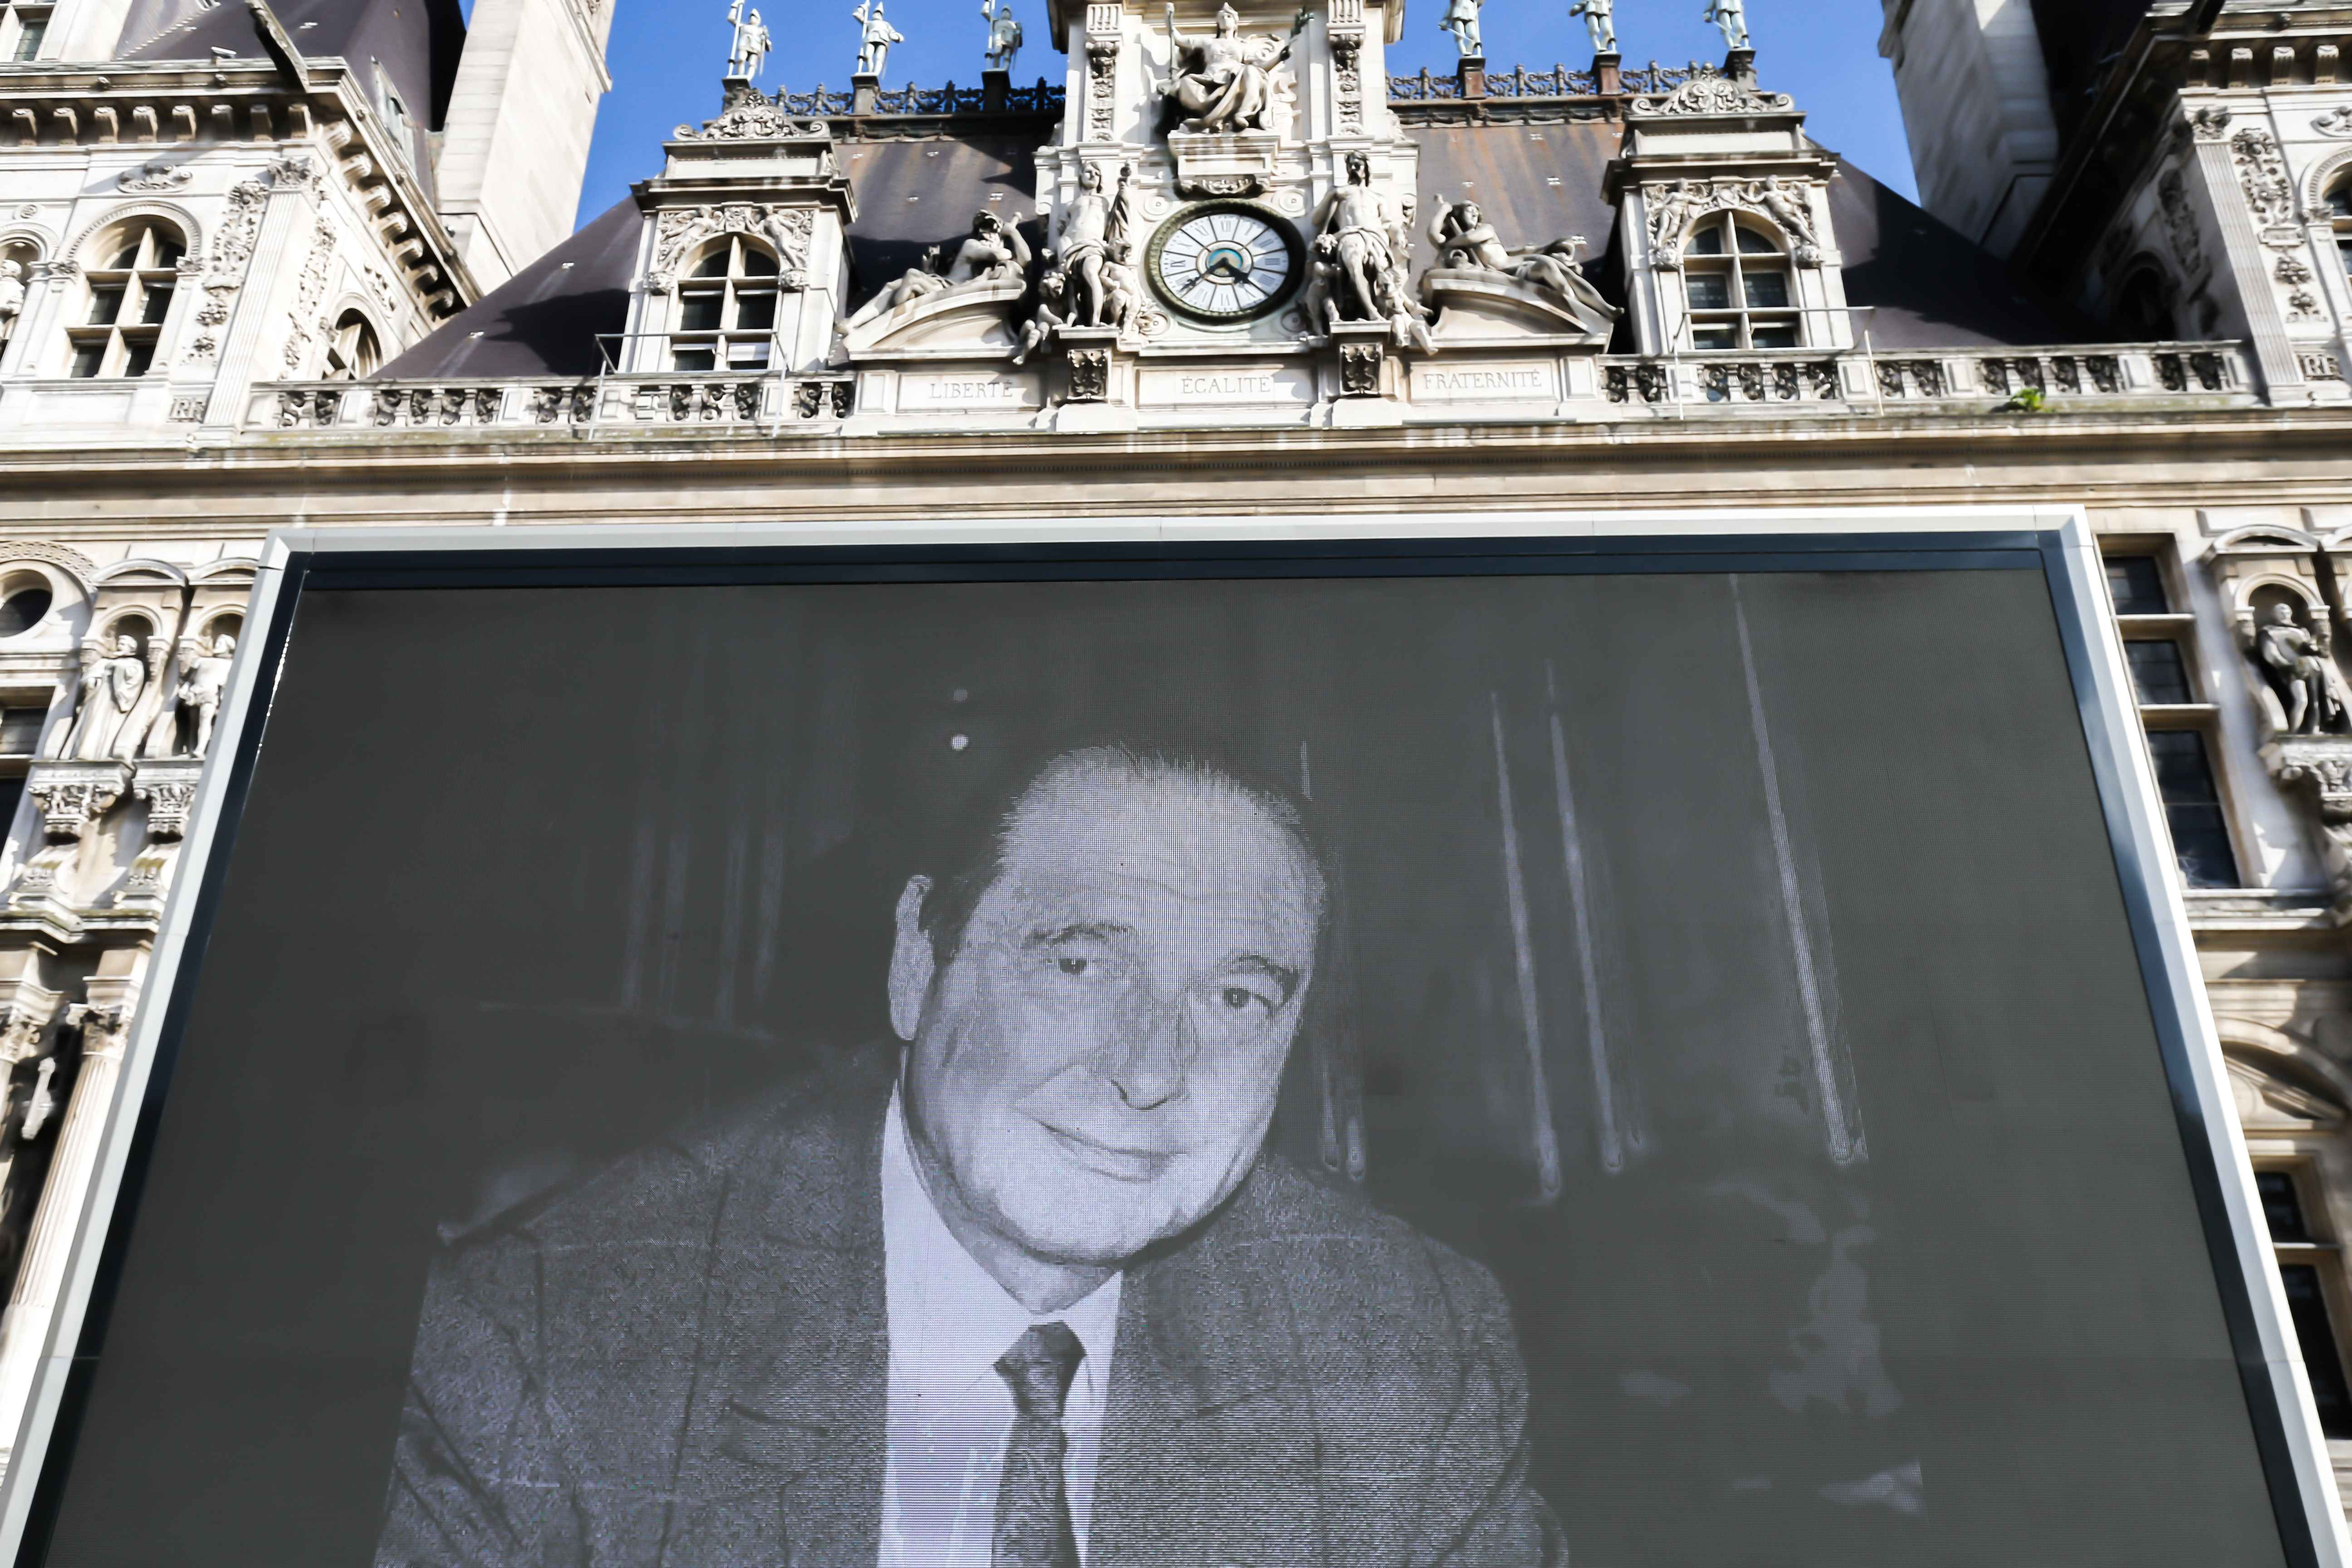 A giant screen displays photos in homage to late former French President Jacques Chirac in front of the City Hall square of Paris on September 28, 2019. Former French president Jacques Chirac died on September 26 at the age of 86 after a long battle with d